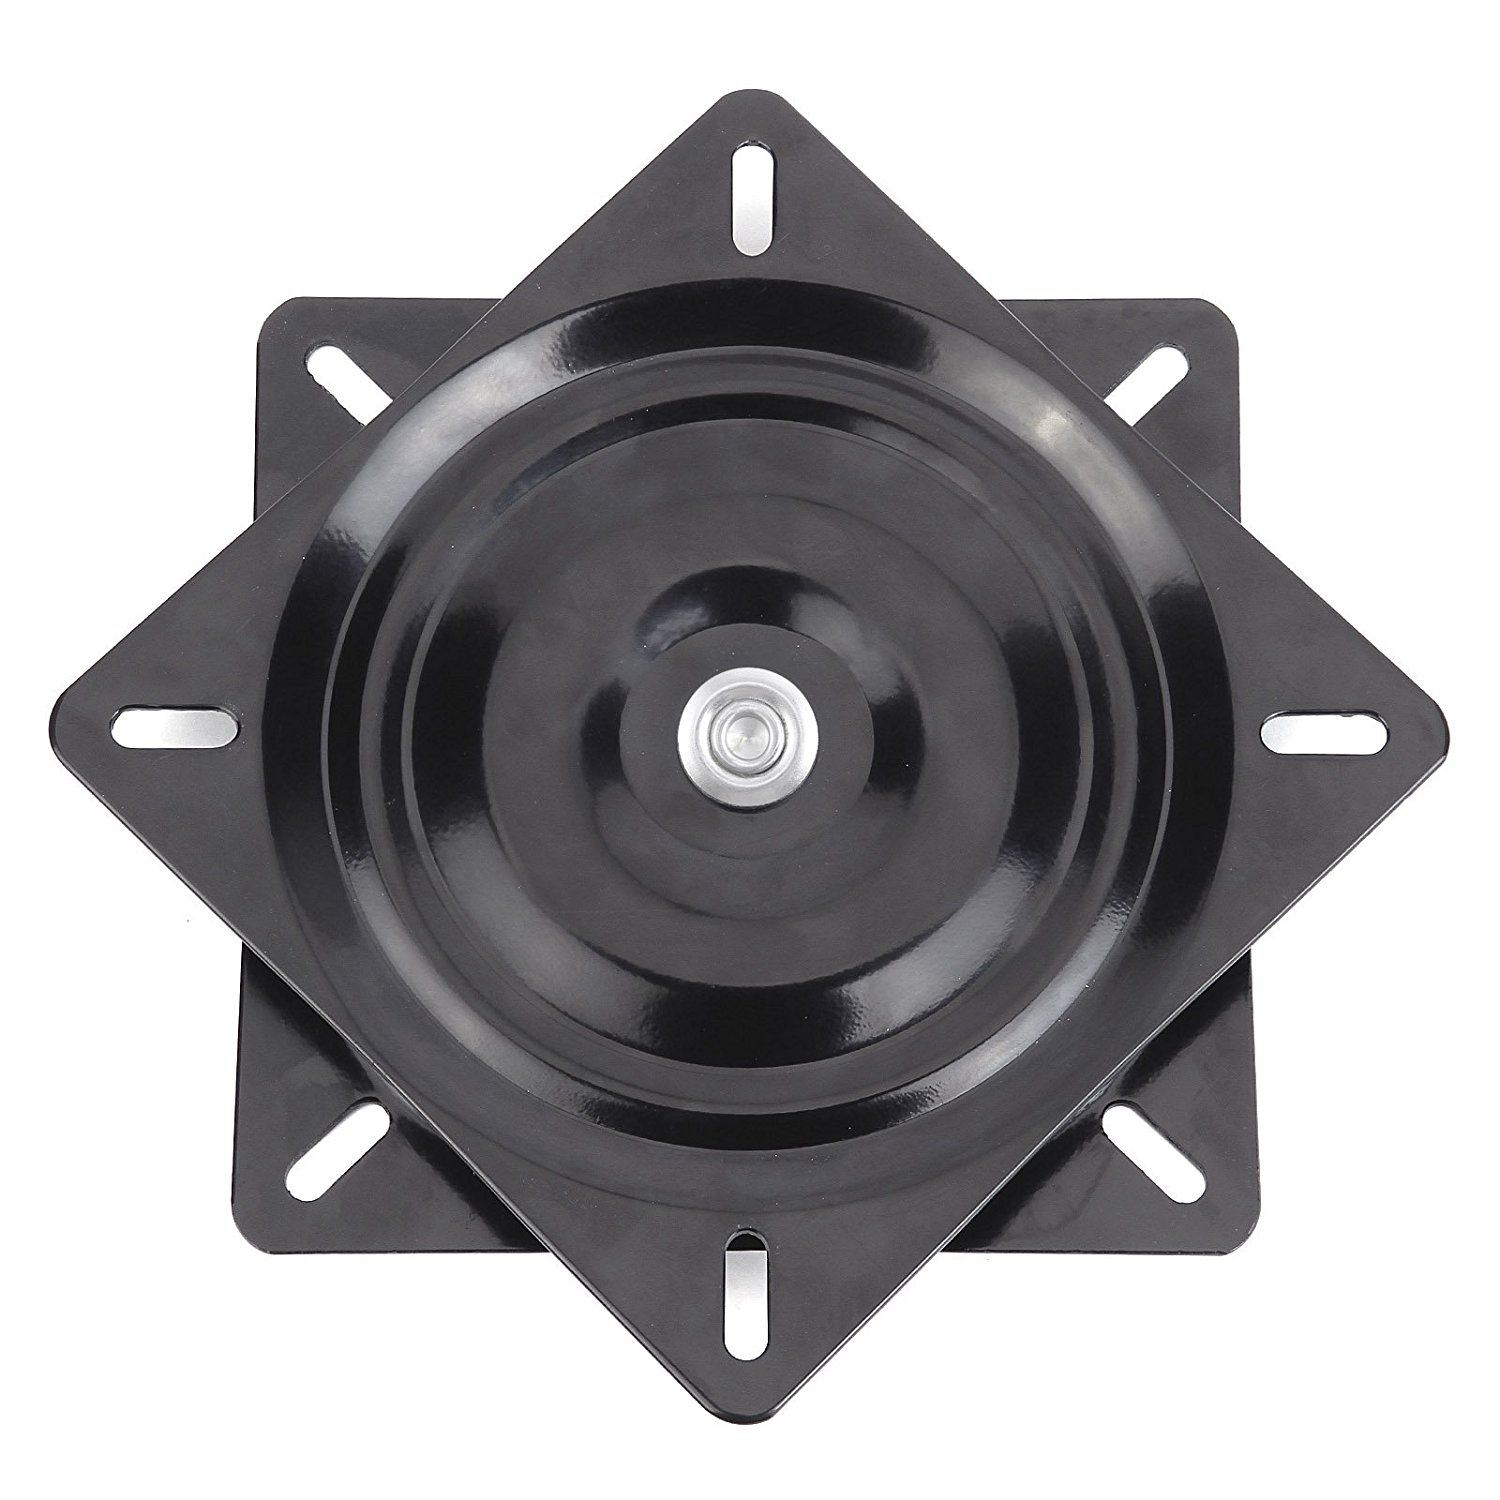 Black Metal 6 inch 360 degree rotating square seat turntable used for 360 degree rotation universal seat 15.4*15.4*2cm